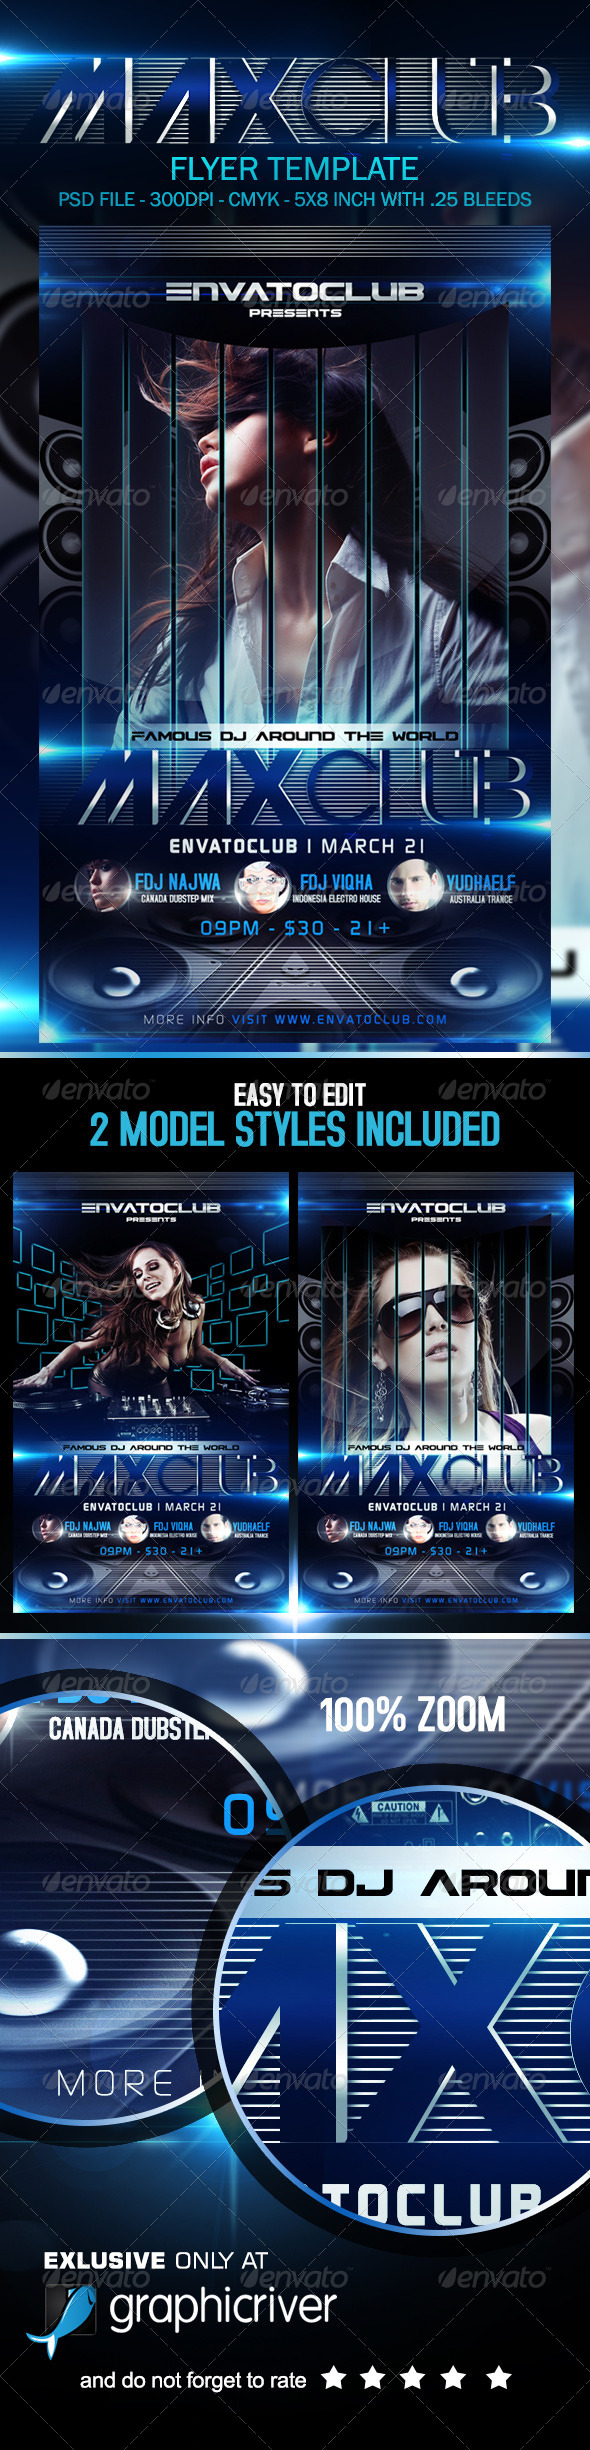 Maxclube Flyer Template - Clubs & Parties Events